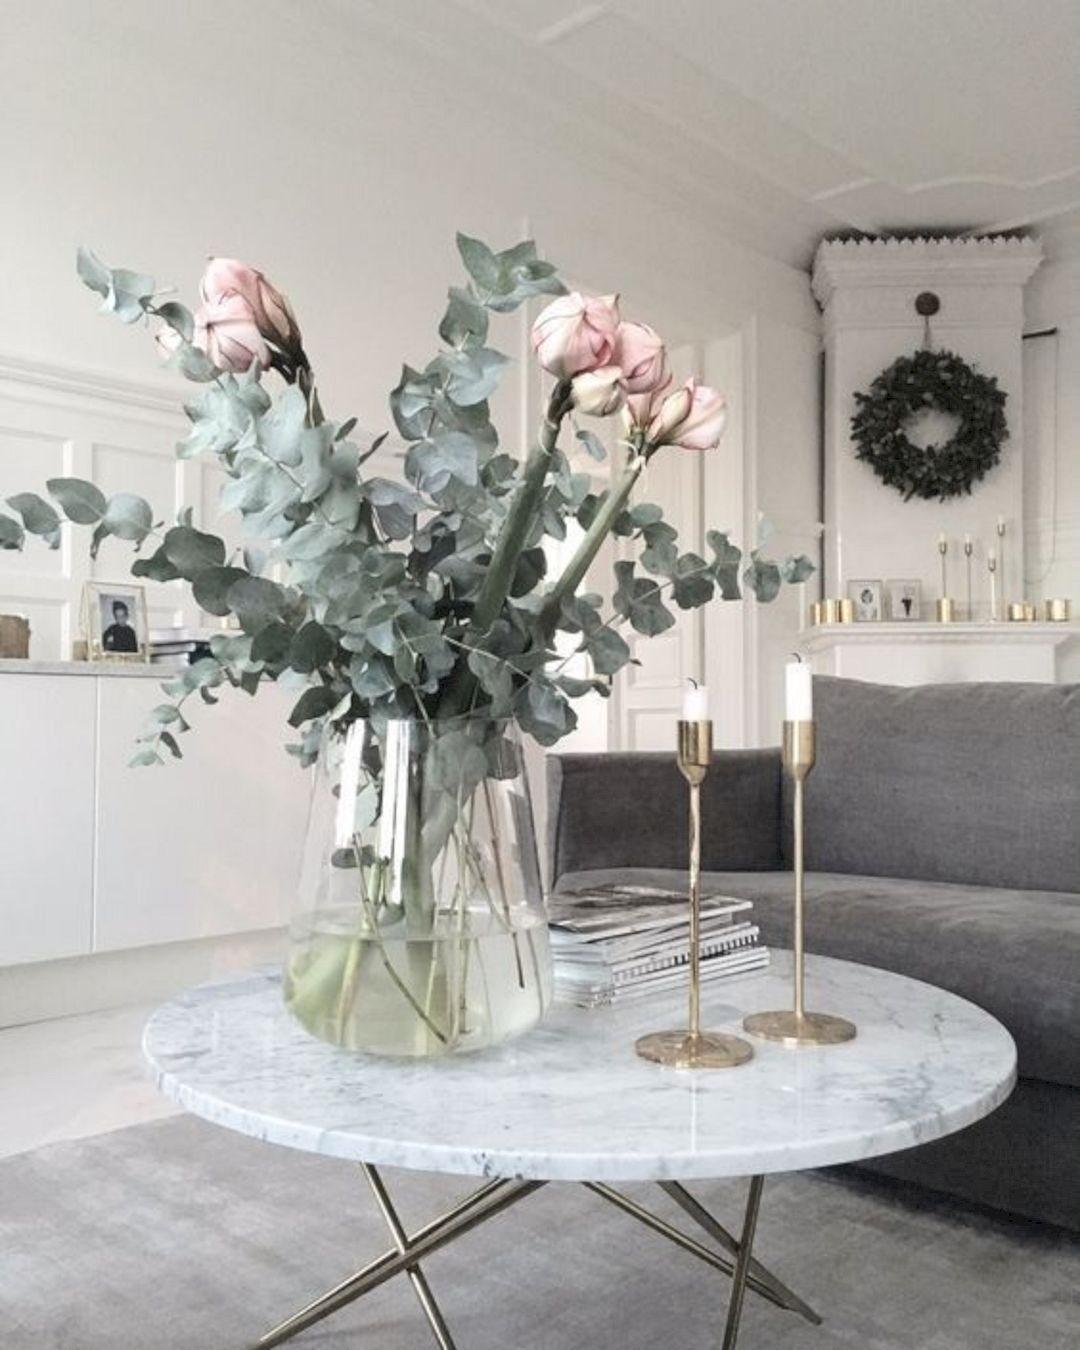 15 Decorating Ideas for a Chic Family Room #roomdecoratingideas A family room is...#chic #decorating #family #ideas #room #roomdecoratingideas